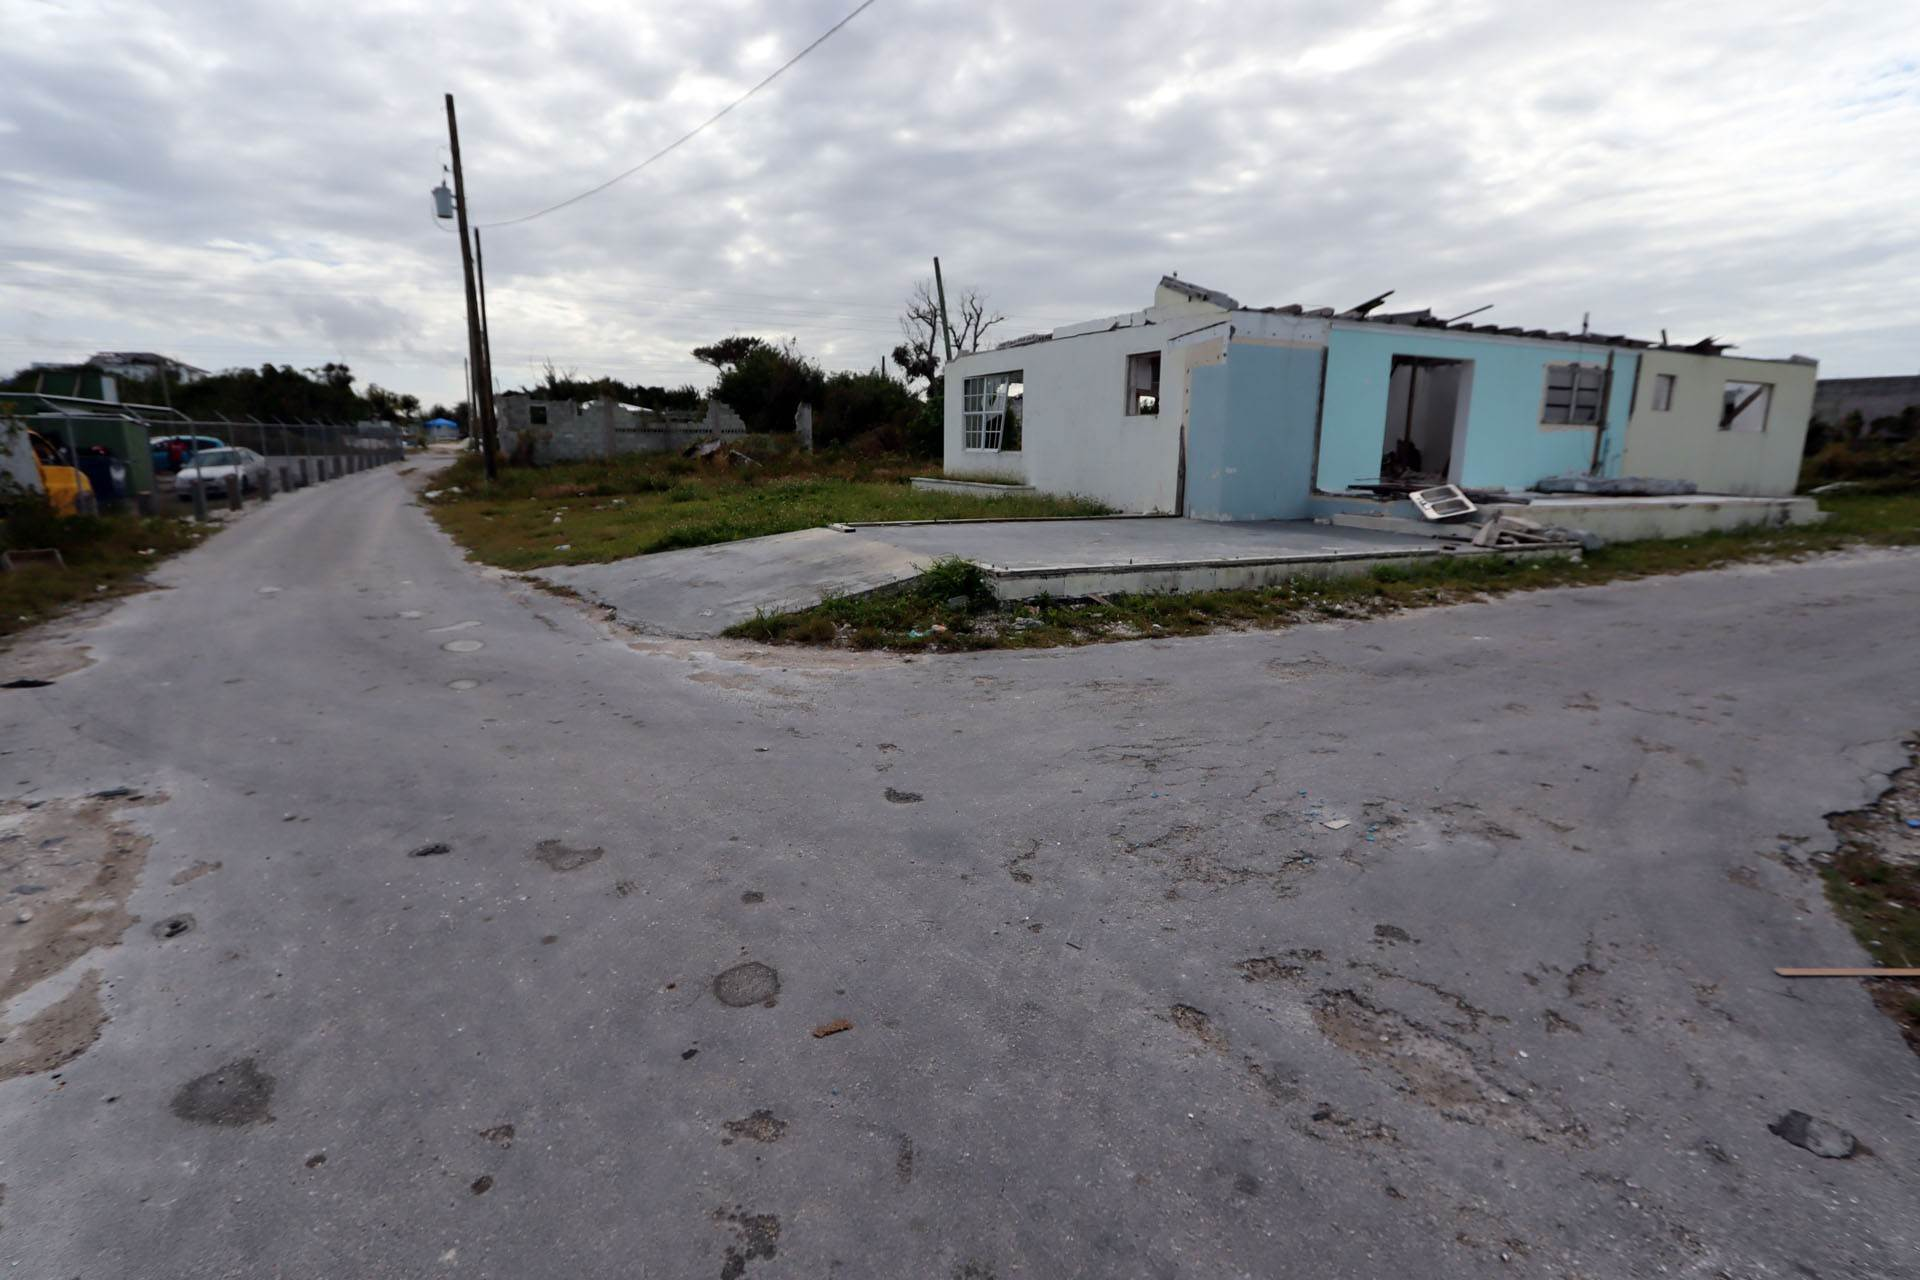 Single Family Homes for Sale at Single Family Home Rebuild With Sea Views - MLS 43319 Dundas Town, Abaco, Bahamas